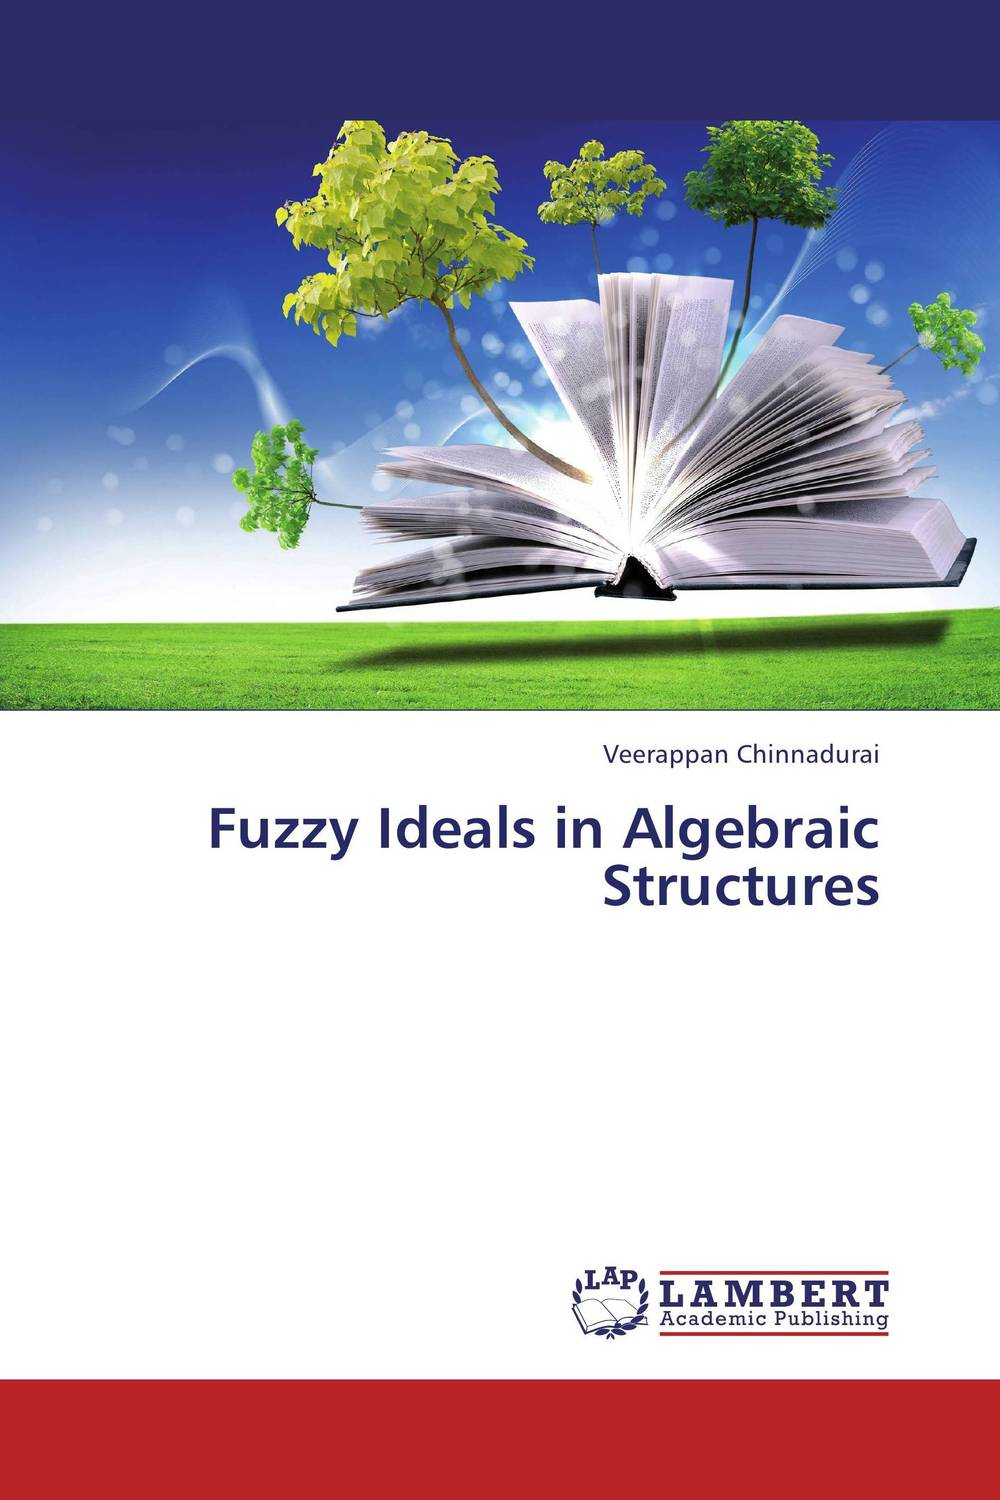 Fuzzy Ideals in Algebraic Structures